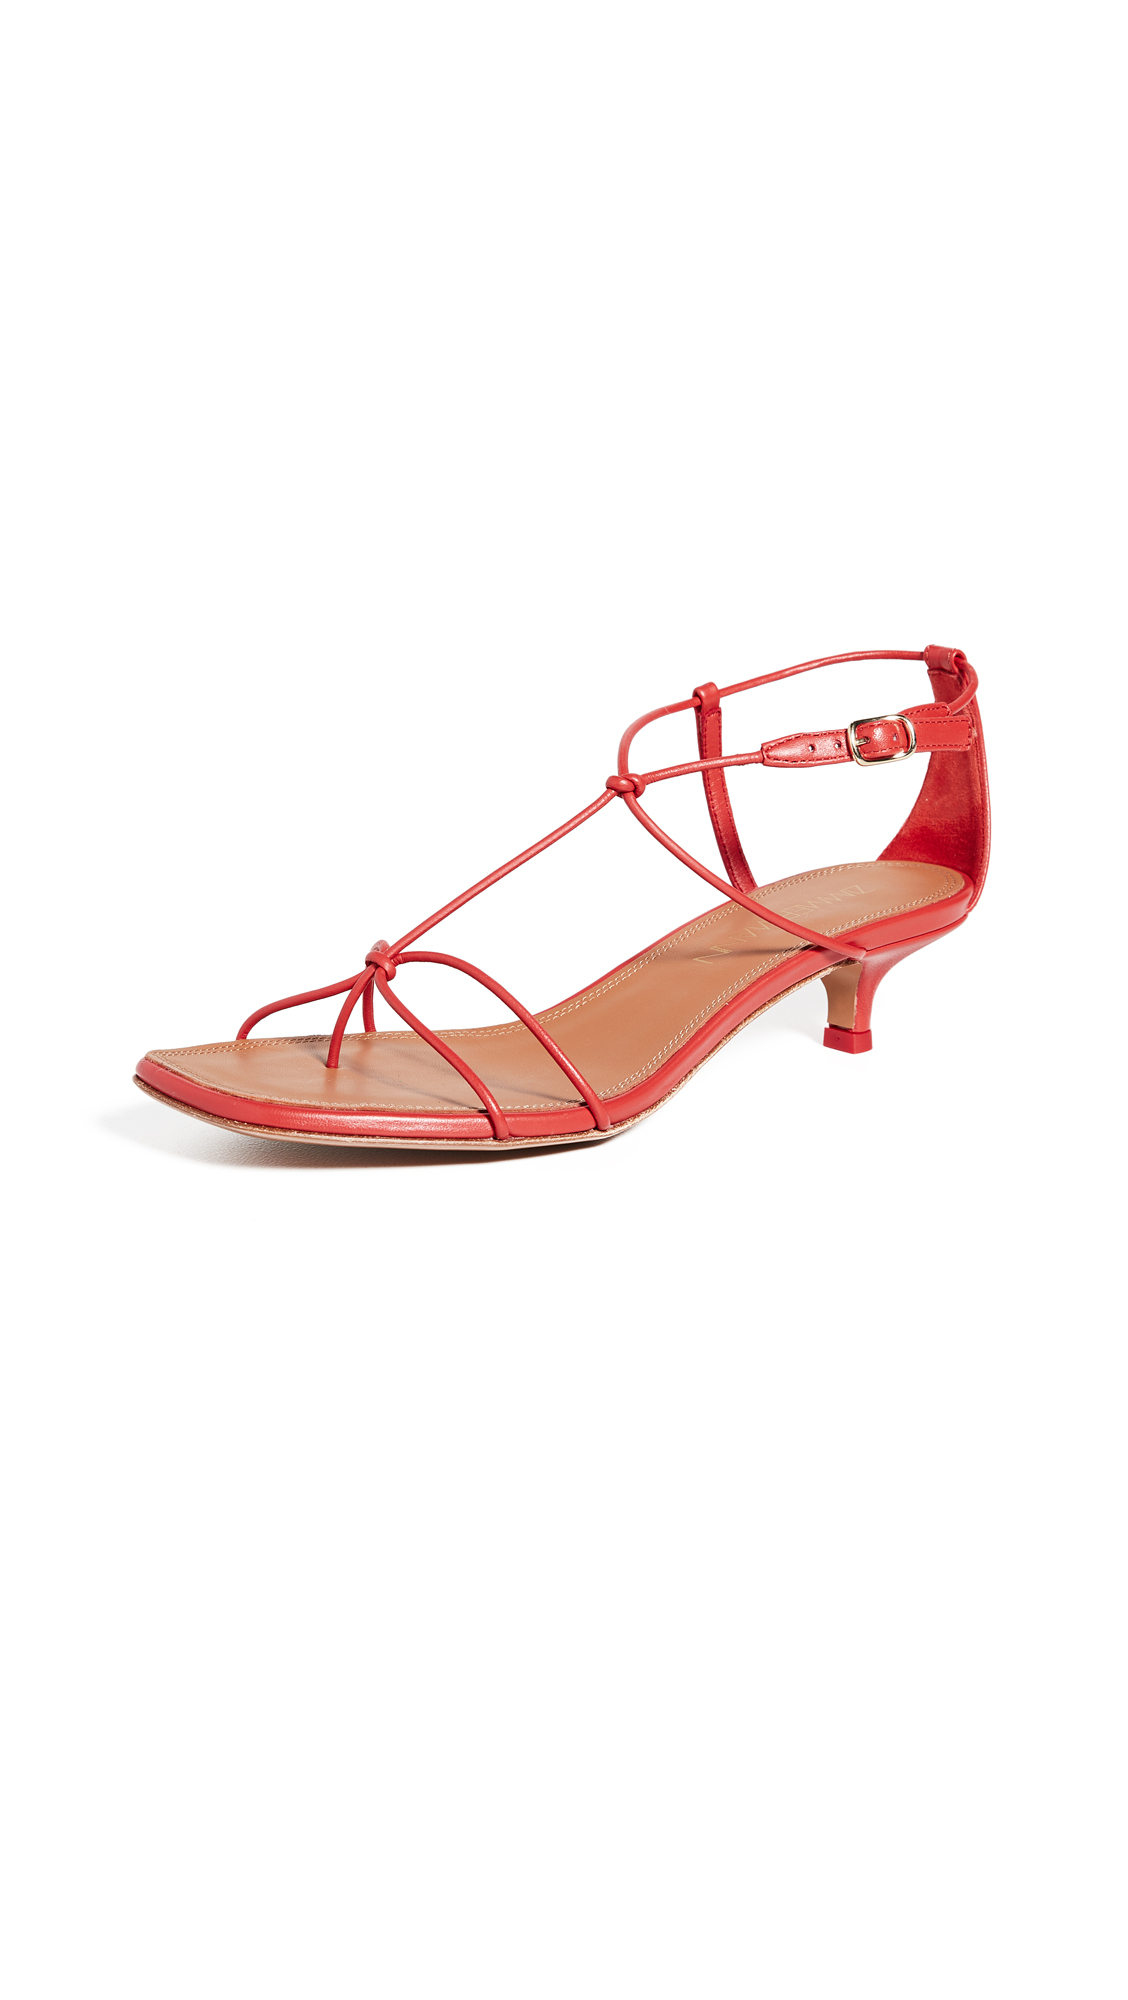 Zimmermann Strappy Kitten Heel Sandals - 60% Off Sale